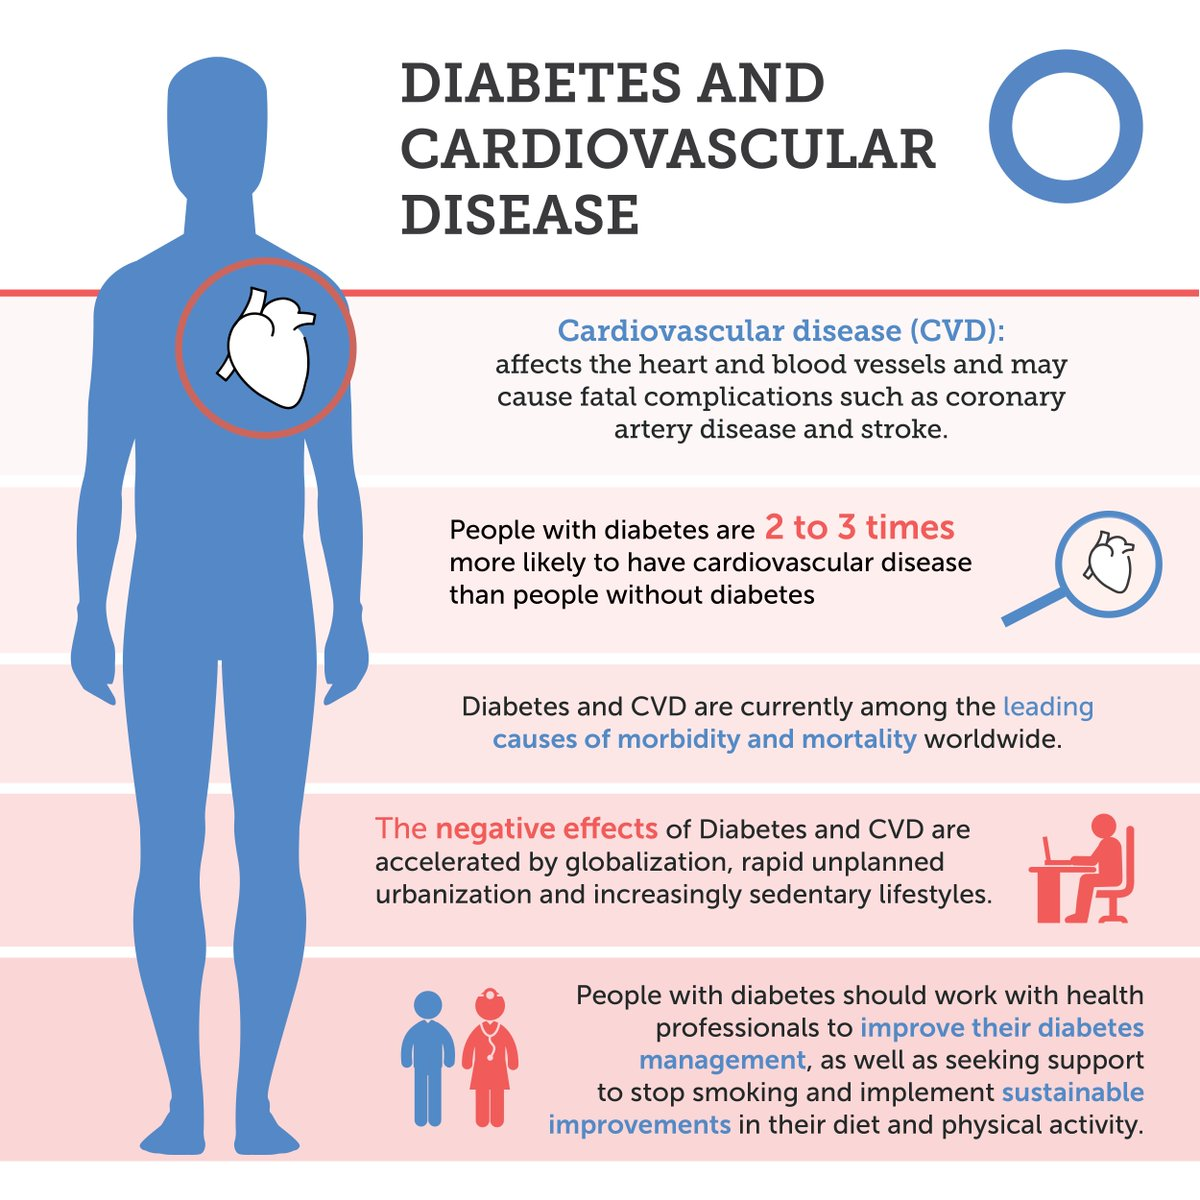 test Twitter Media - People living with #diabetes are two to three times more likely to develop #cardiovasculardisease. Learn more about #diabetescomplications and the importance of good management. https://t.co/atuFBH3Hj1 https://t.co/sWQ8VftVhB